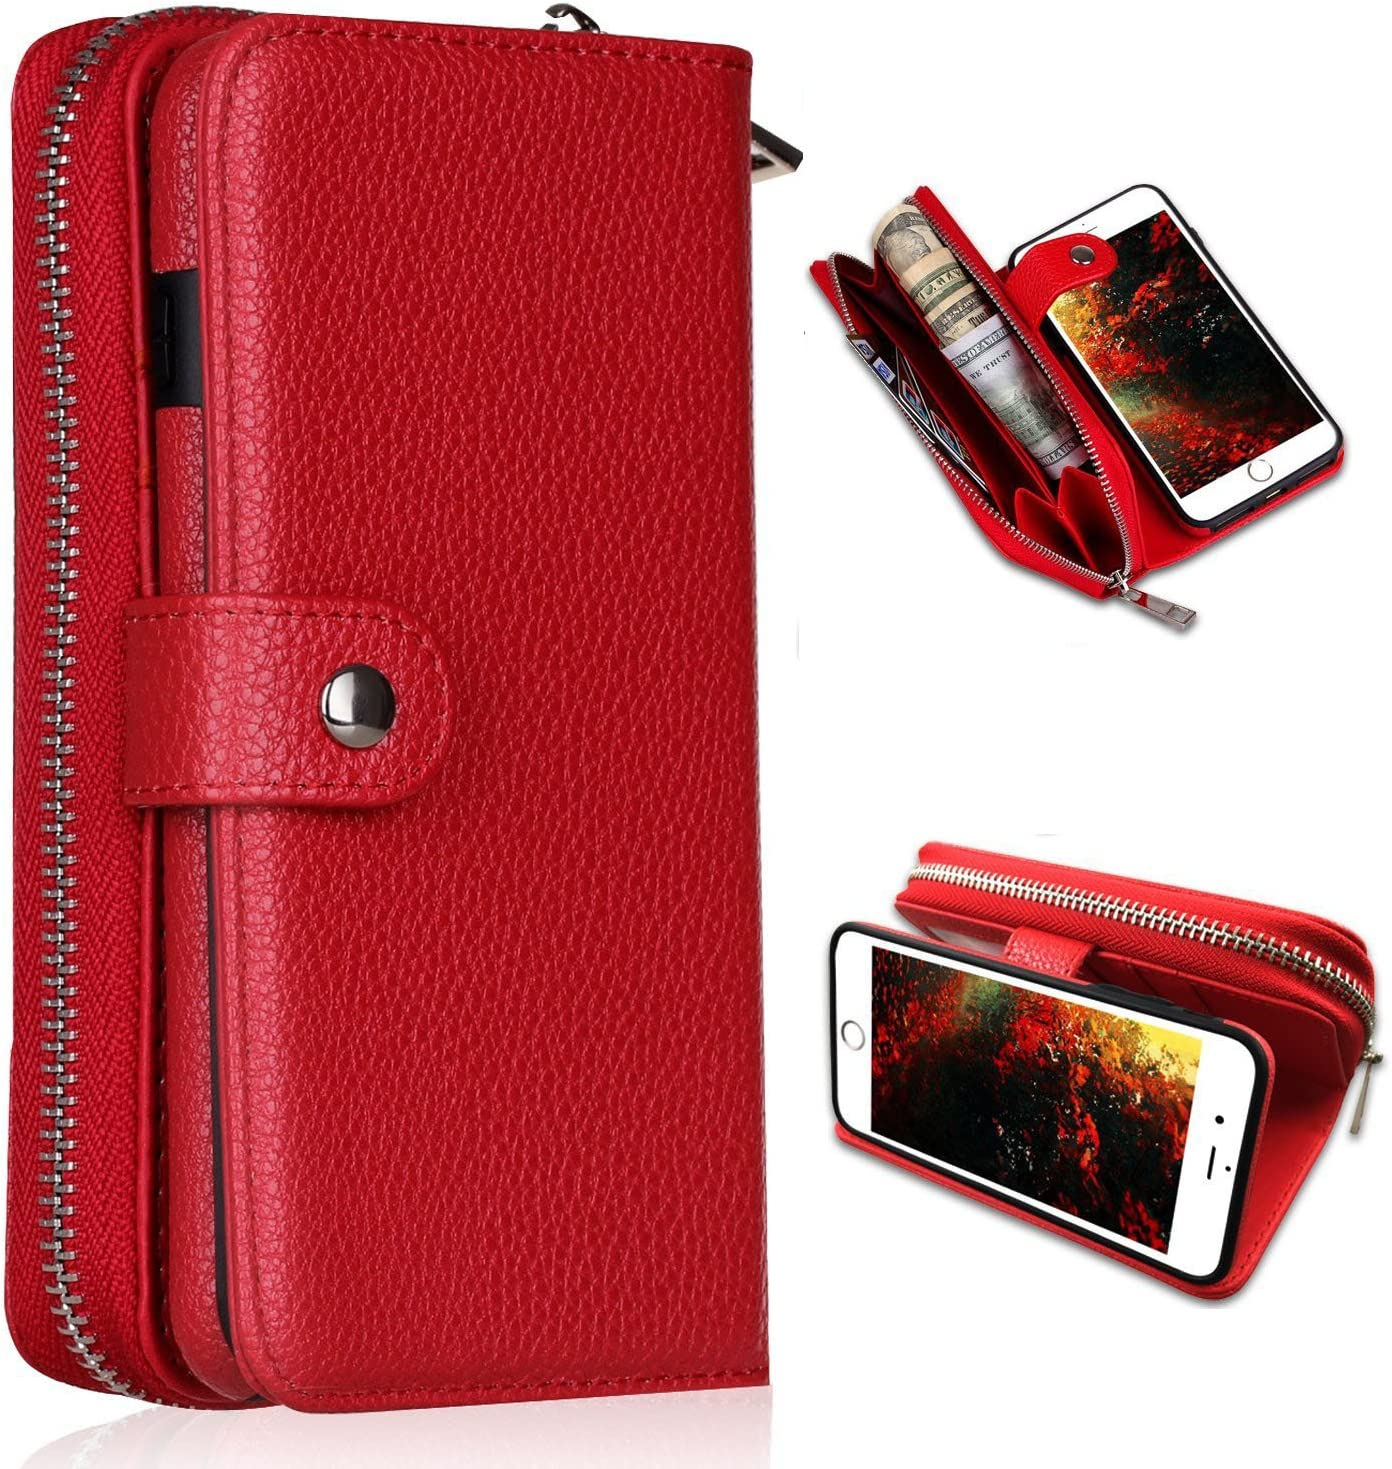 iPhone 6/6s Plus Wallet Case,YSJT Magnets Detachable Credit Card Slots with Zipper Classic Fashionable Cover Flip Premium PU Leather for iPhone 6/6s Plus 5.5 inch (Red)